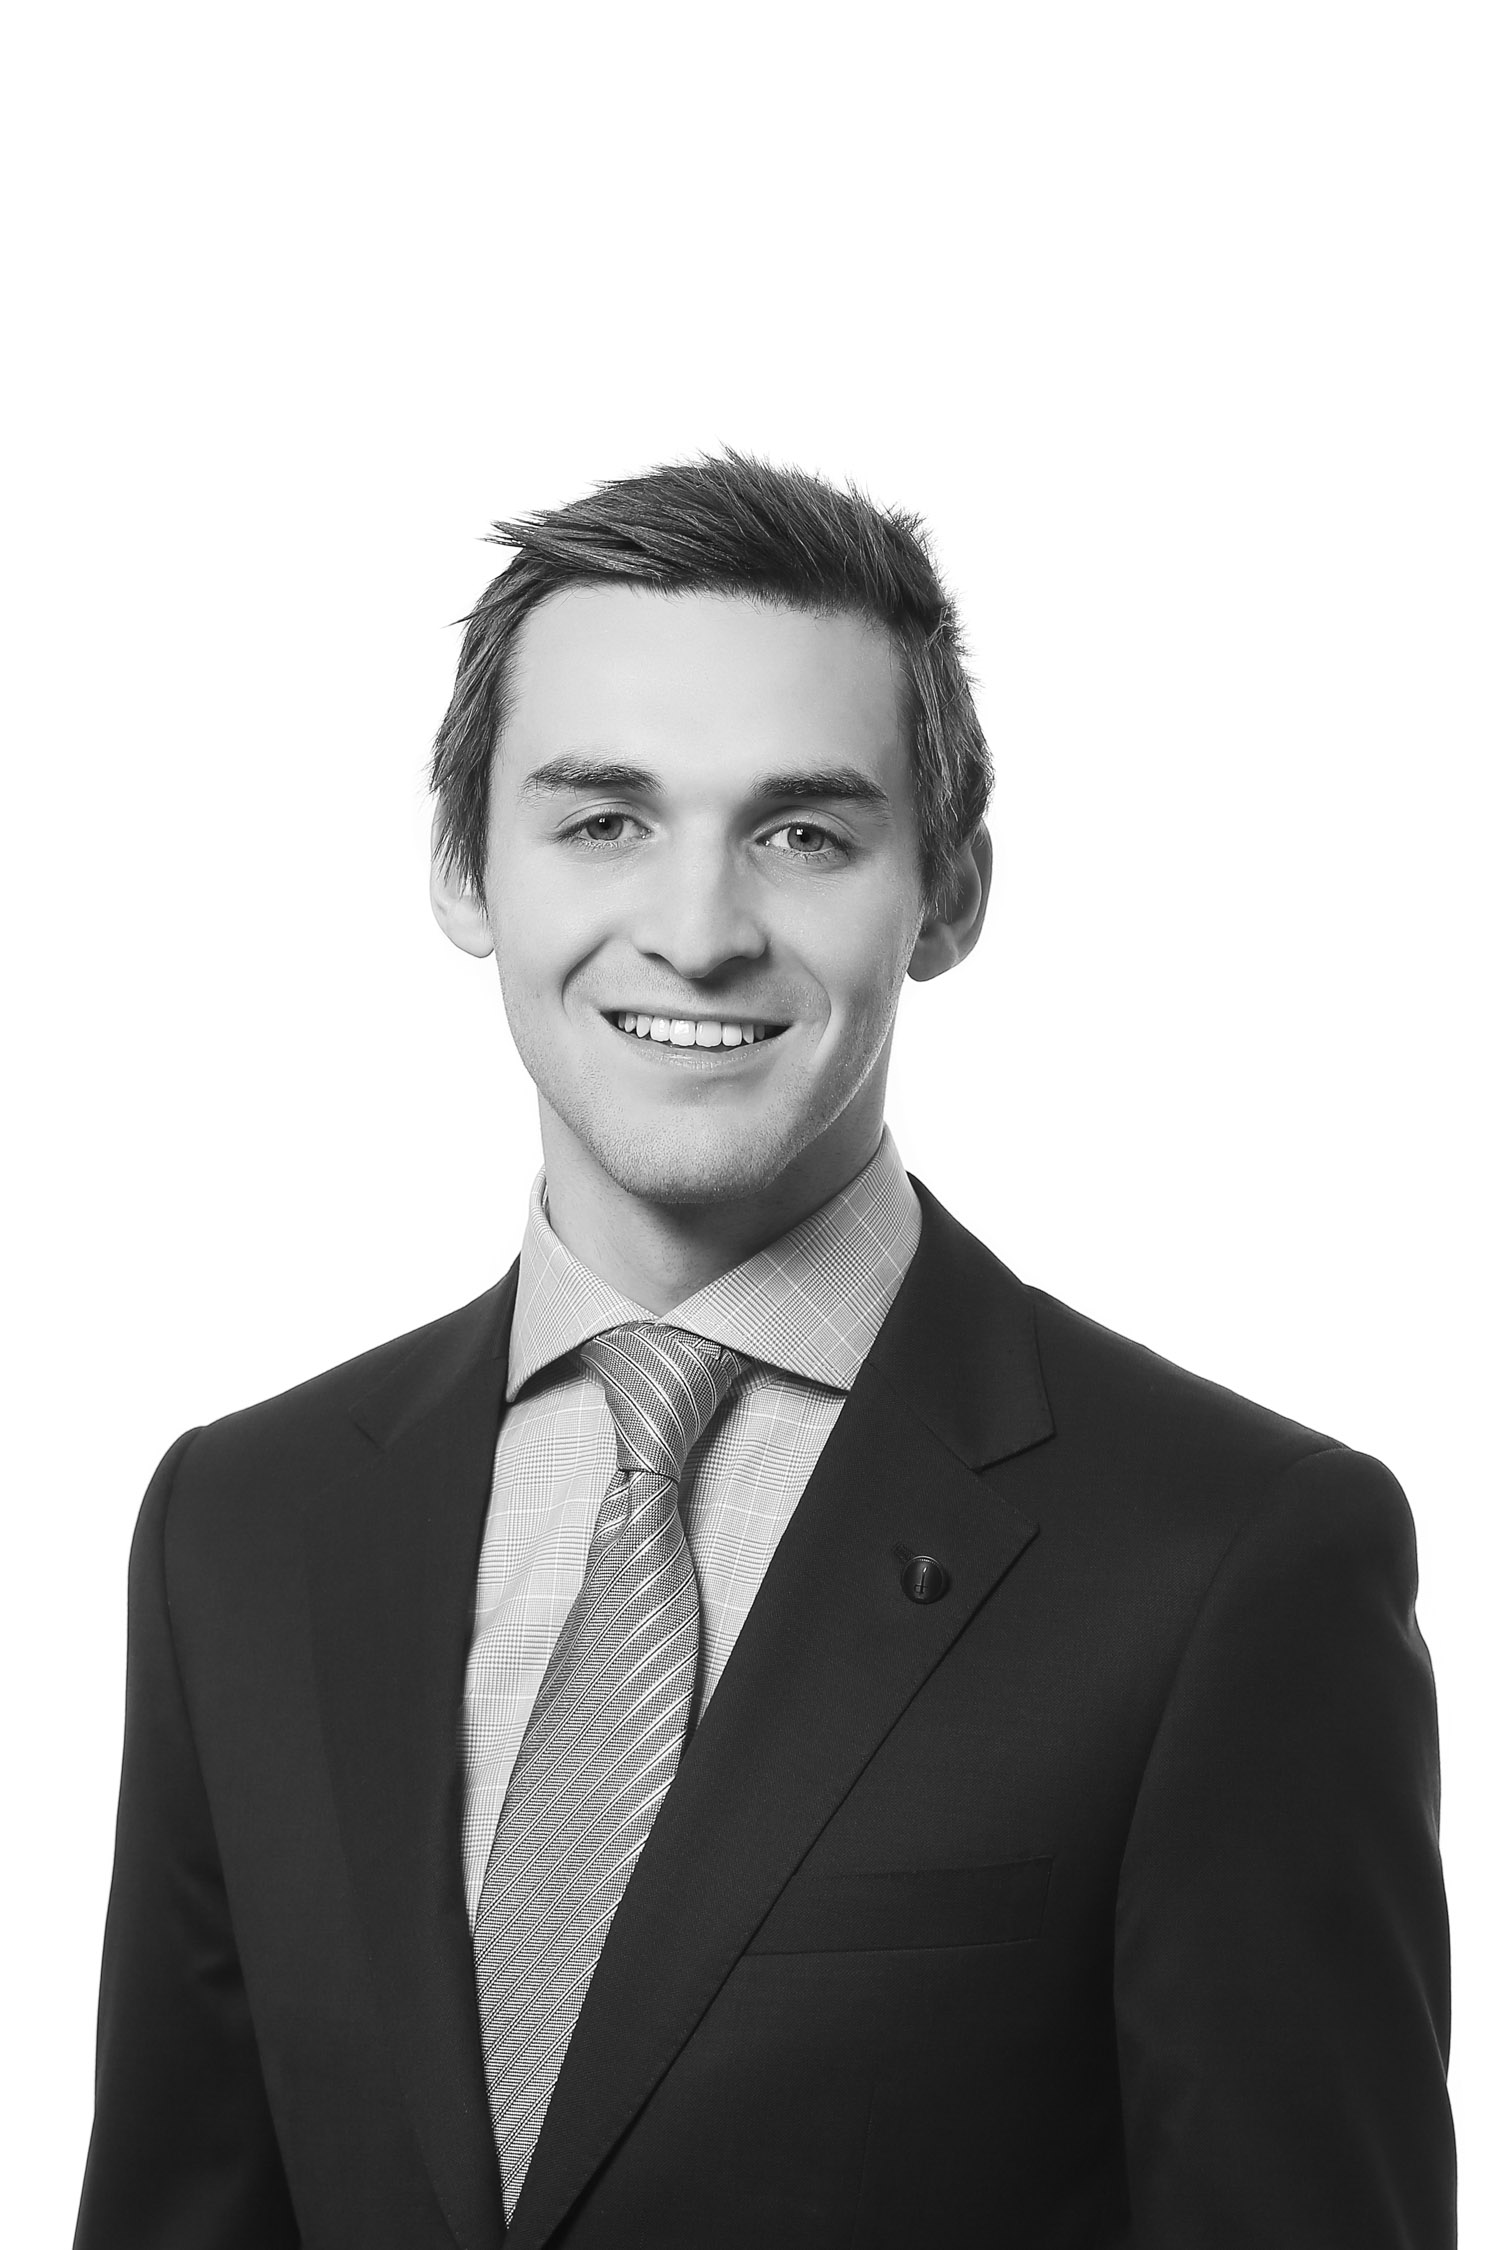 Adam Attard - LawyerAdam joined Ryan Legal in 2018 as a law graduate whilst undertaking his Graduate Diploma of Legal Practice at Leo Cussen Centre for Law. He obtained his Bachelor of Laws from Victoria University. Alongside full time study he also worked in a commercial law firm as a paralegal.Adam works with Shane Ryan primarily on TAC Claims and Superannuation Benefit claimsQUALIFICATIONS:Graduate Diploma of Legal PracticeBachelor of Laws (LLB)(Hons)ADMISSION:Supreme Court of Victoria (2018)